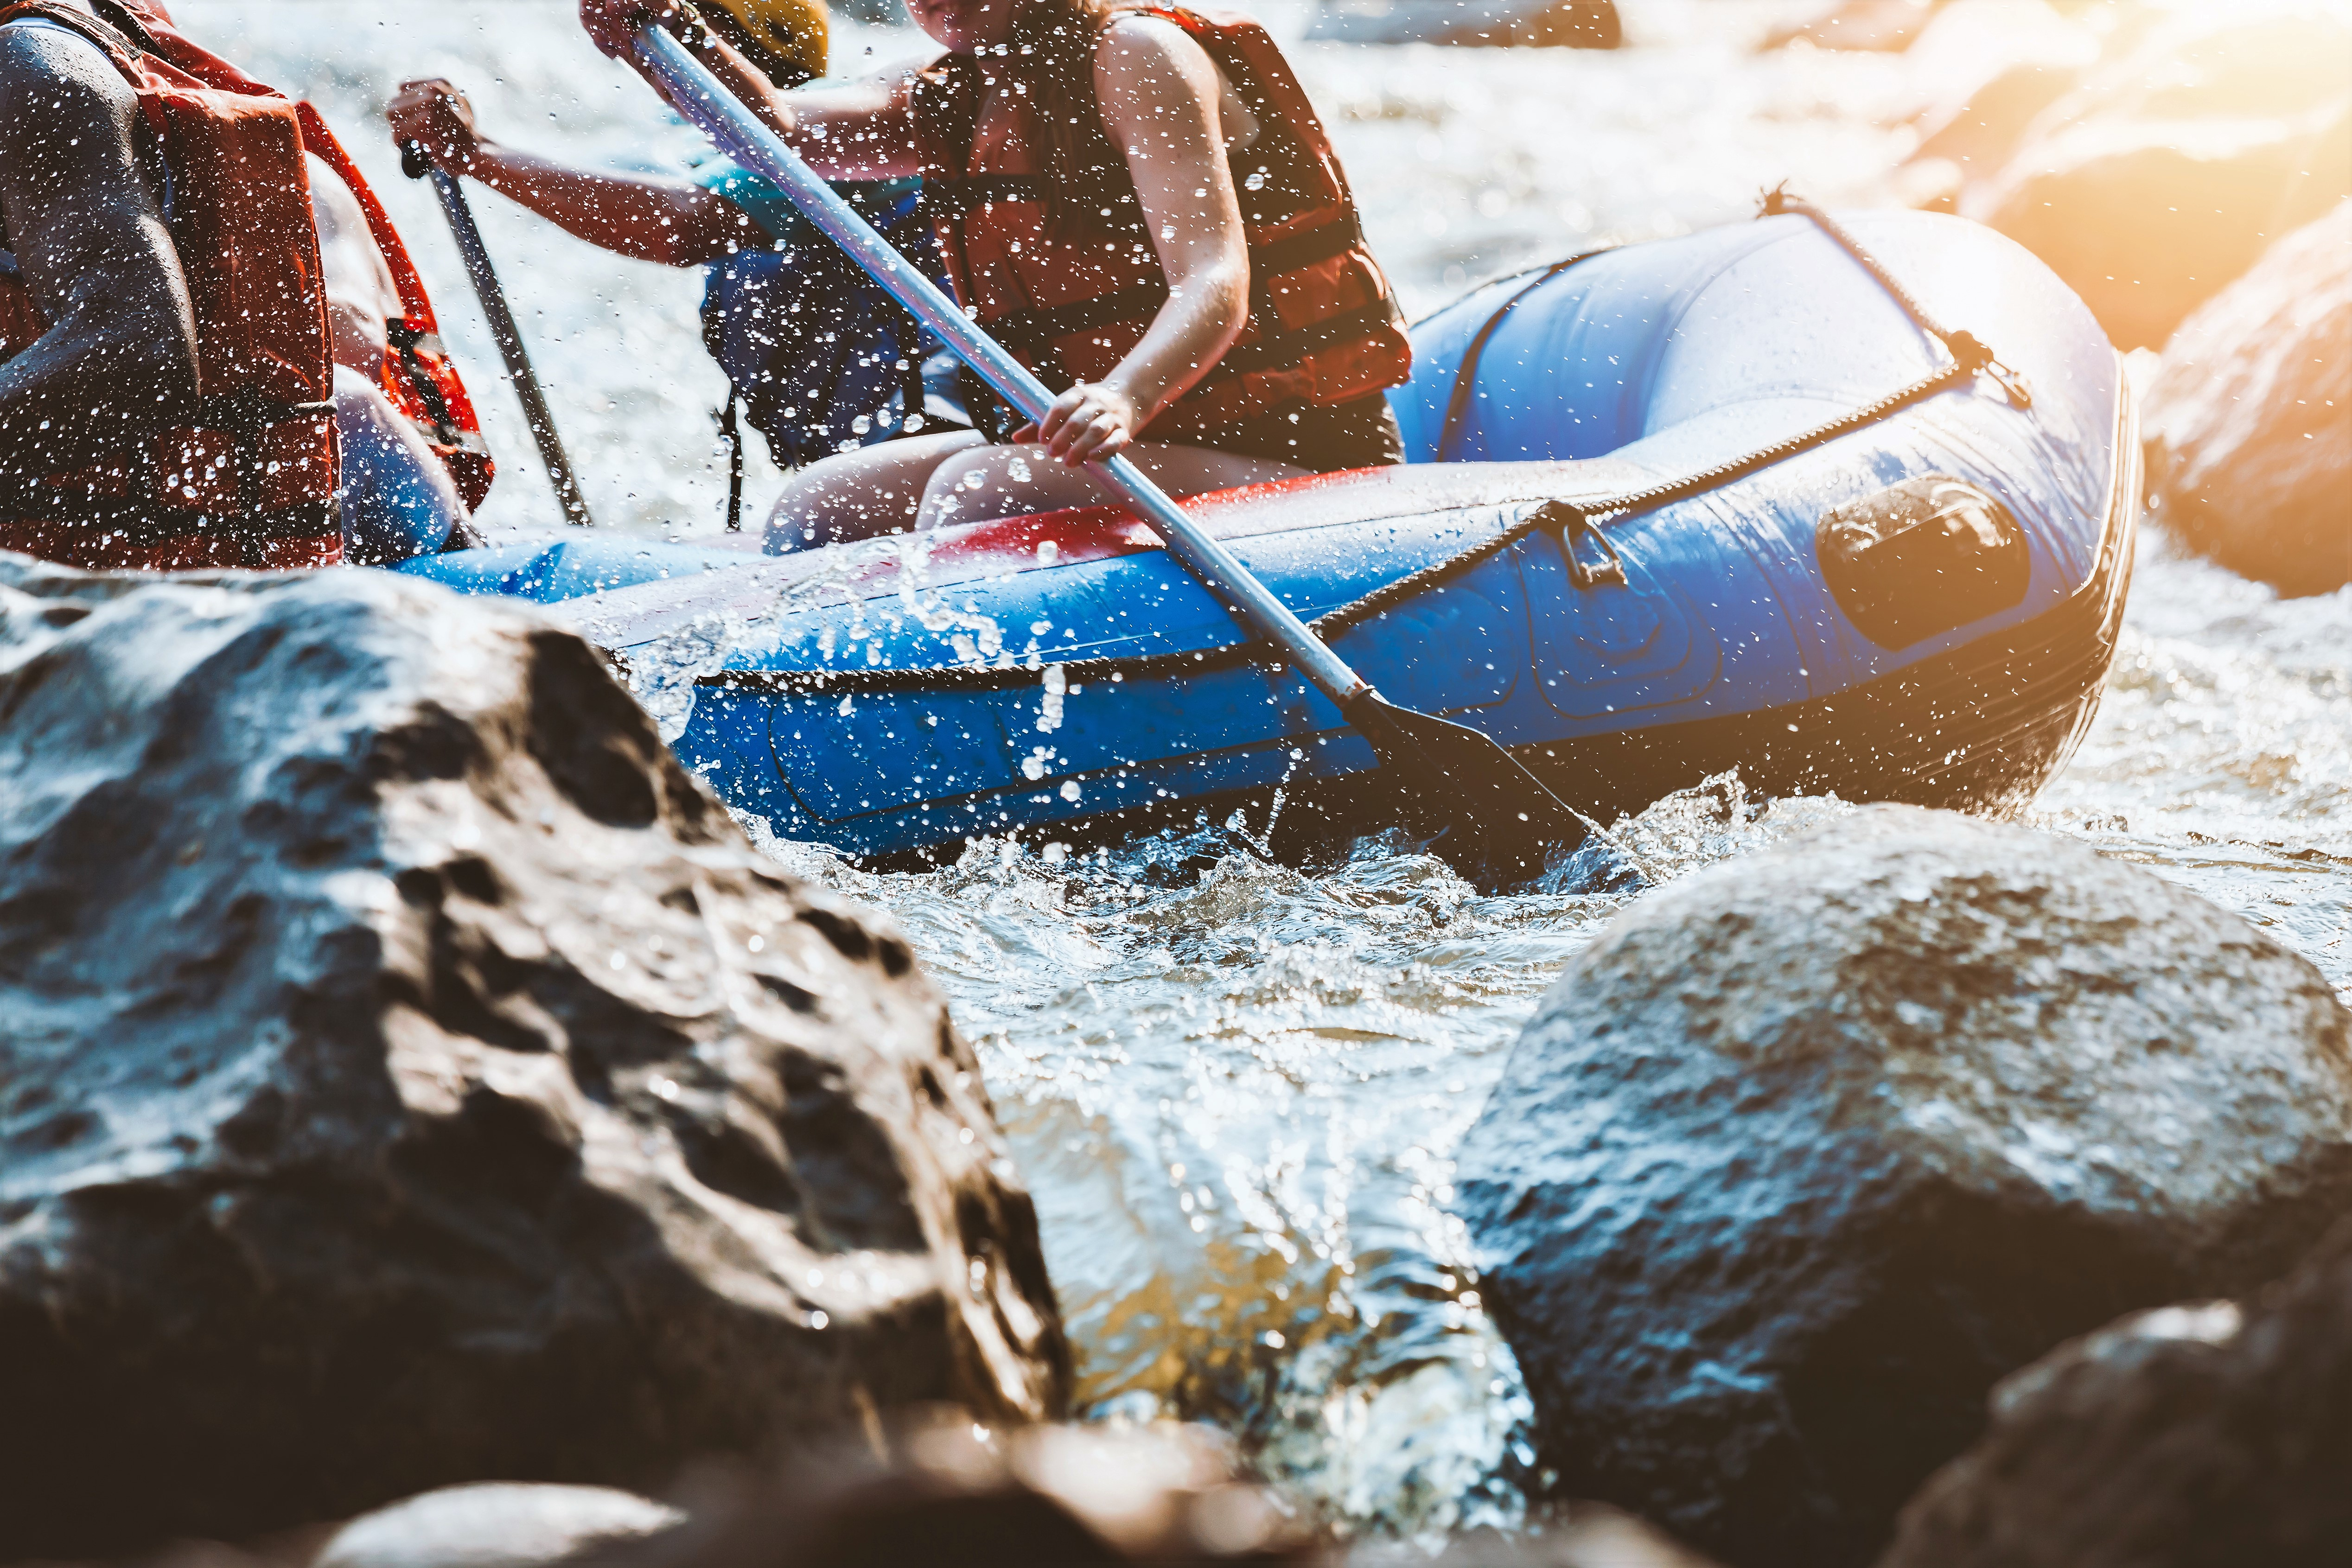 rafting_shutterstock - Modified